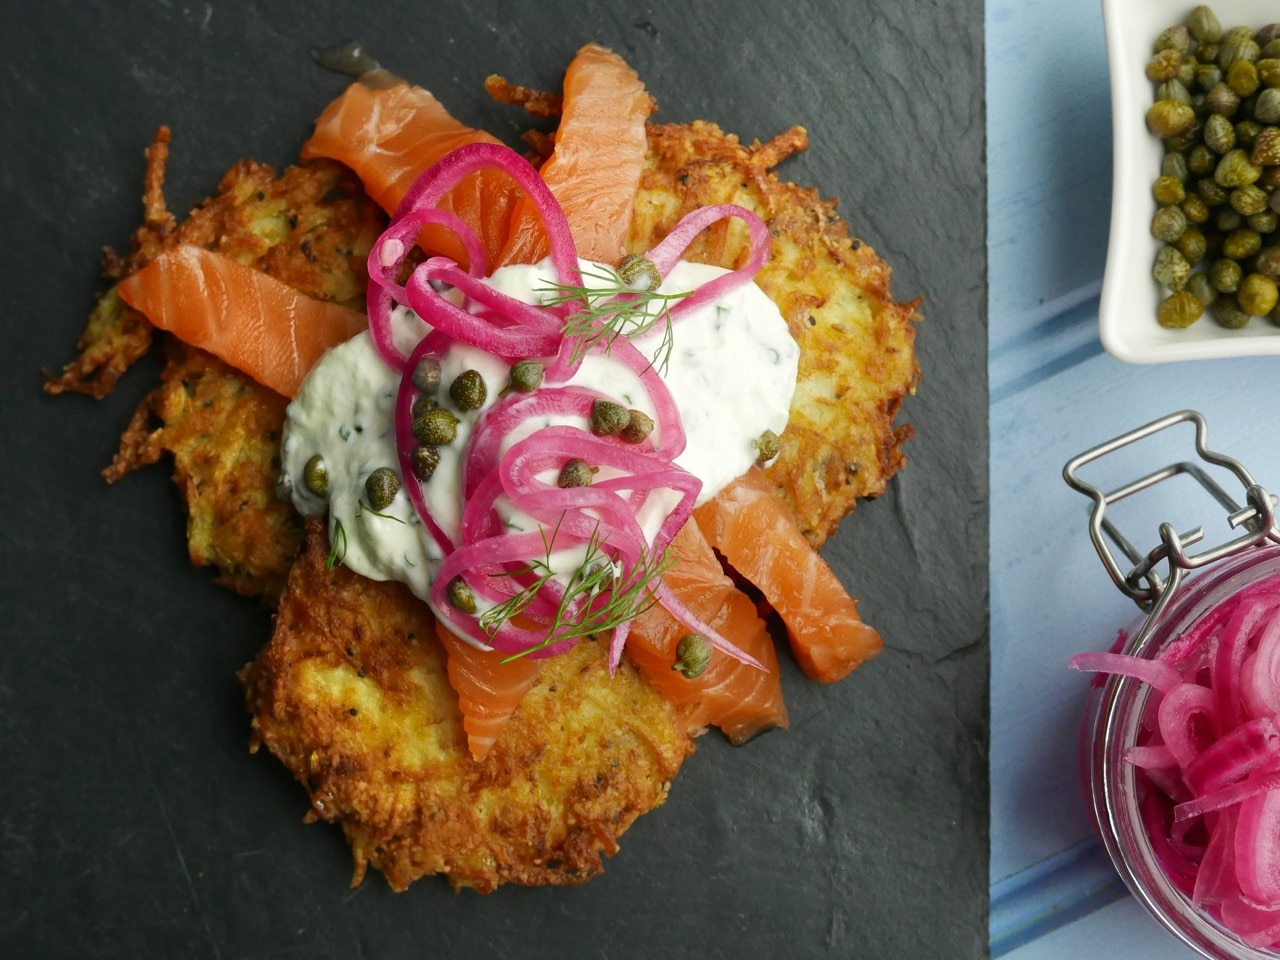 Lox with Fennel and Potato Latkes